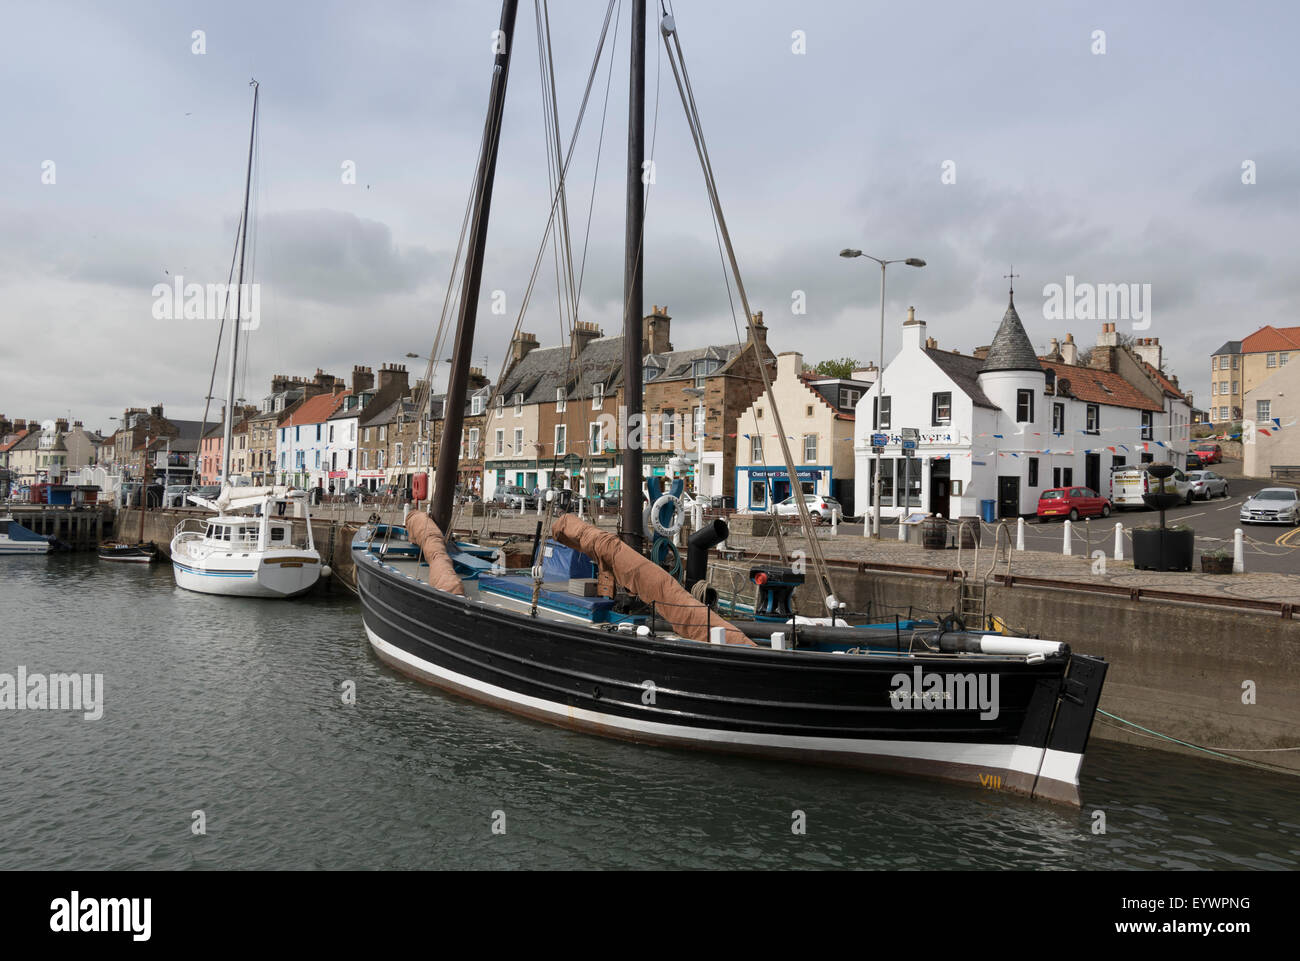 Sailing Herring Drifter moored in harbour, Anstruther, Fife Coast, Scotland, United Kingdom, Europe - Stock Image